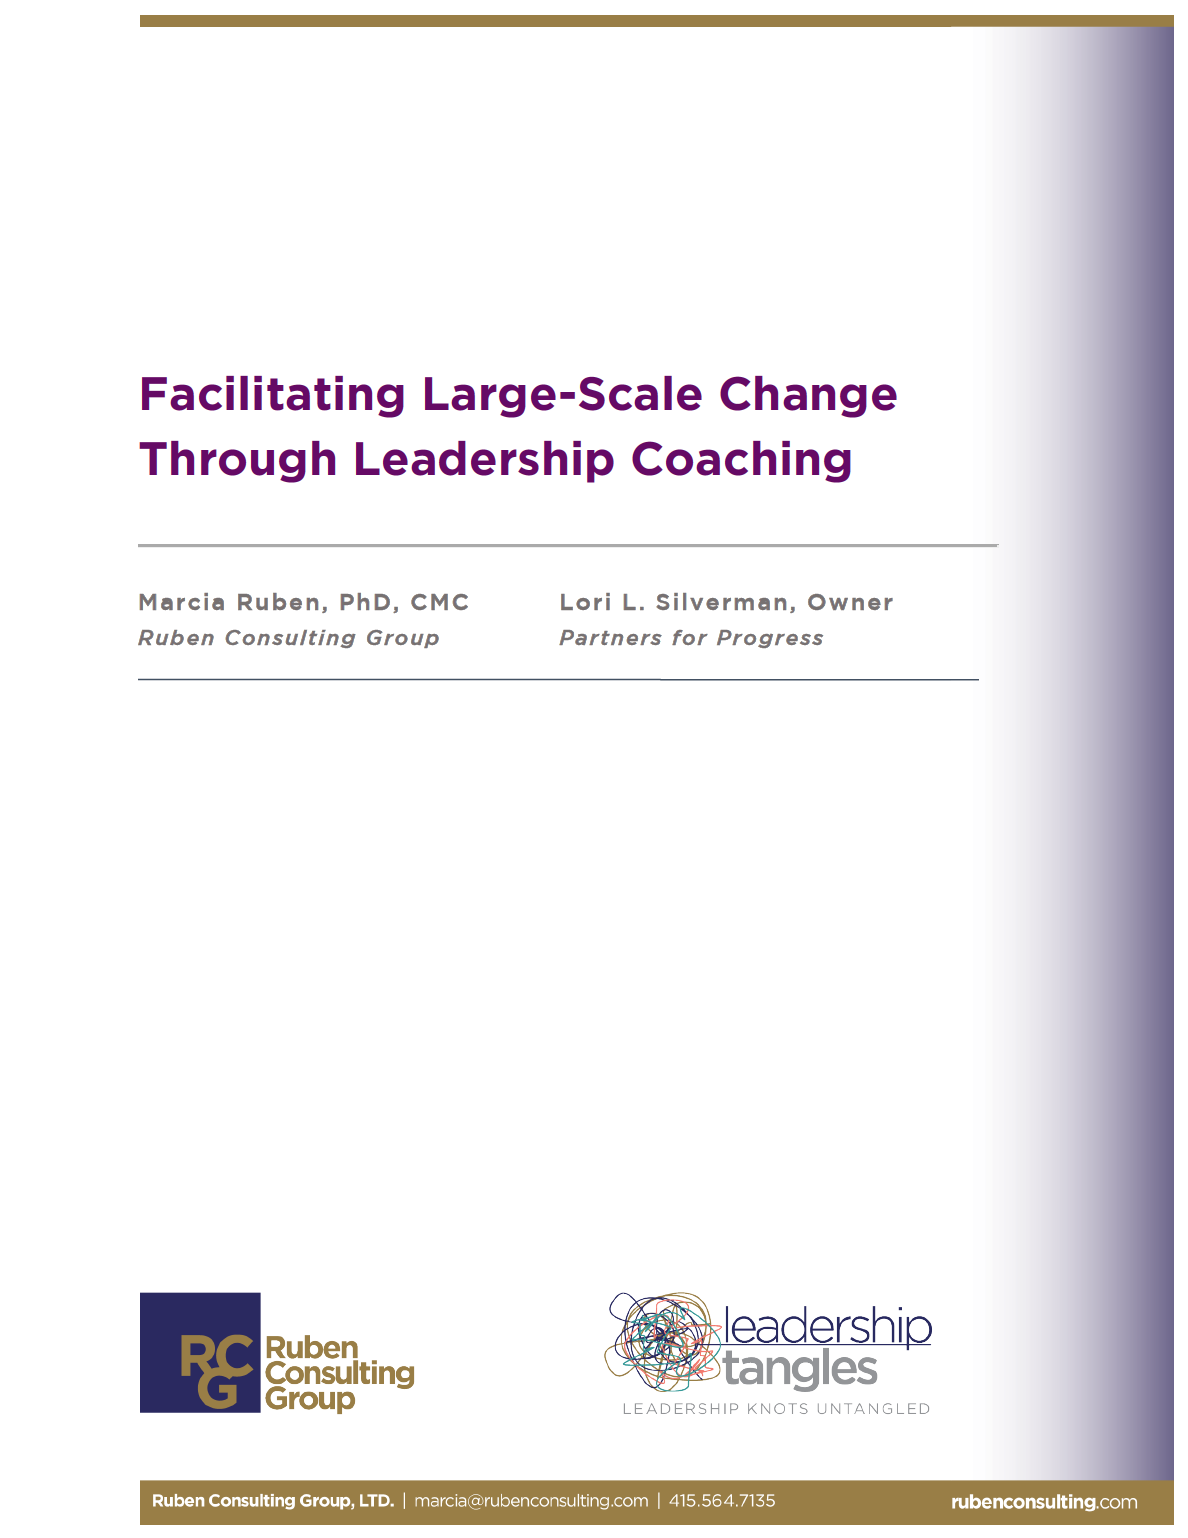 Facilitating Large Scale Change Through Leadership Coaching